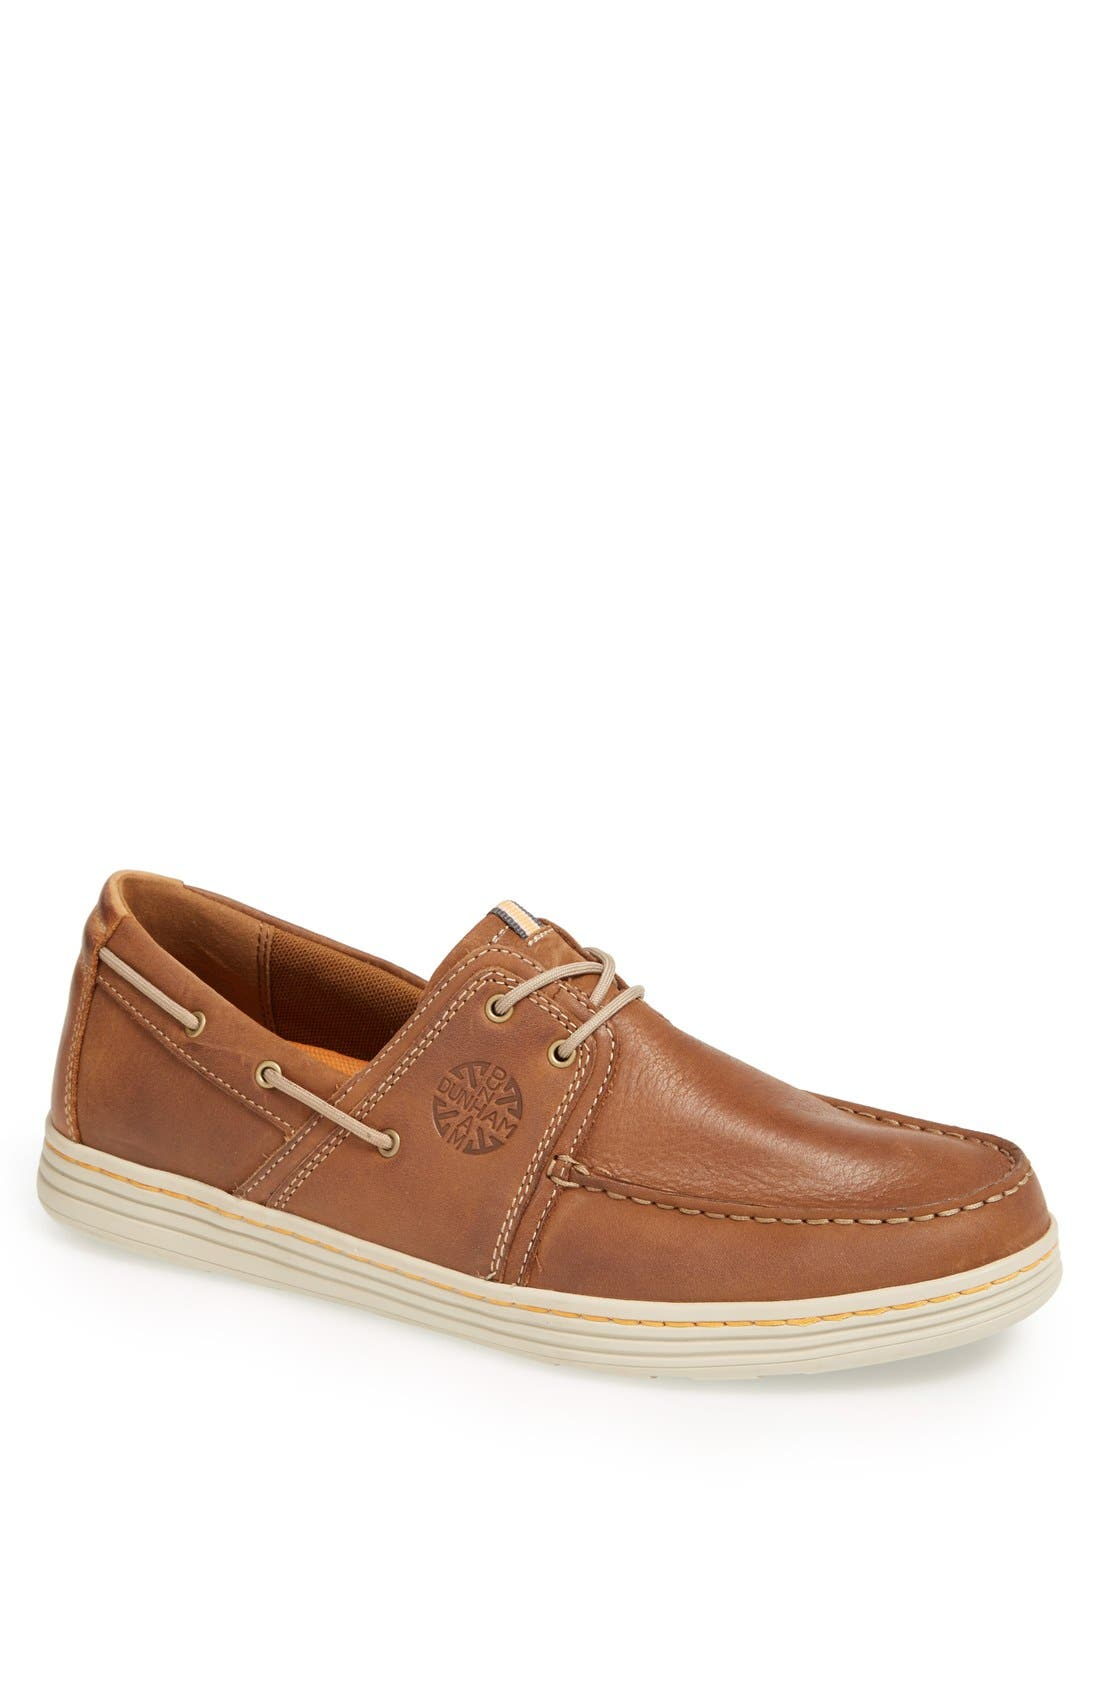 Alternate Image 1 Selected - Dunham 'Chace' Boat Shoe